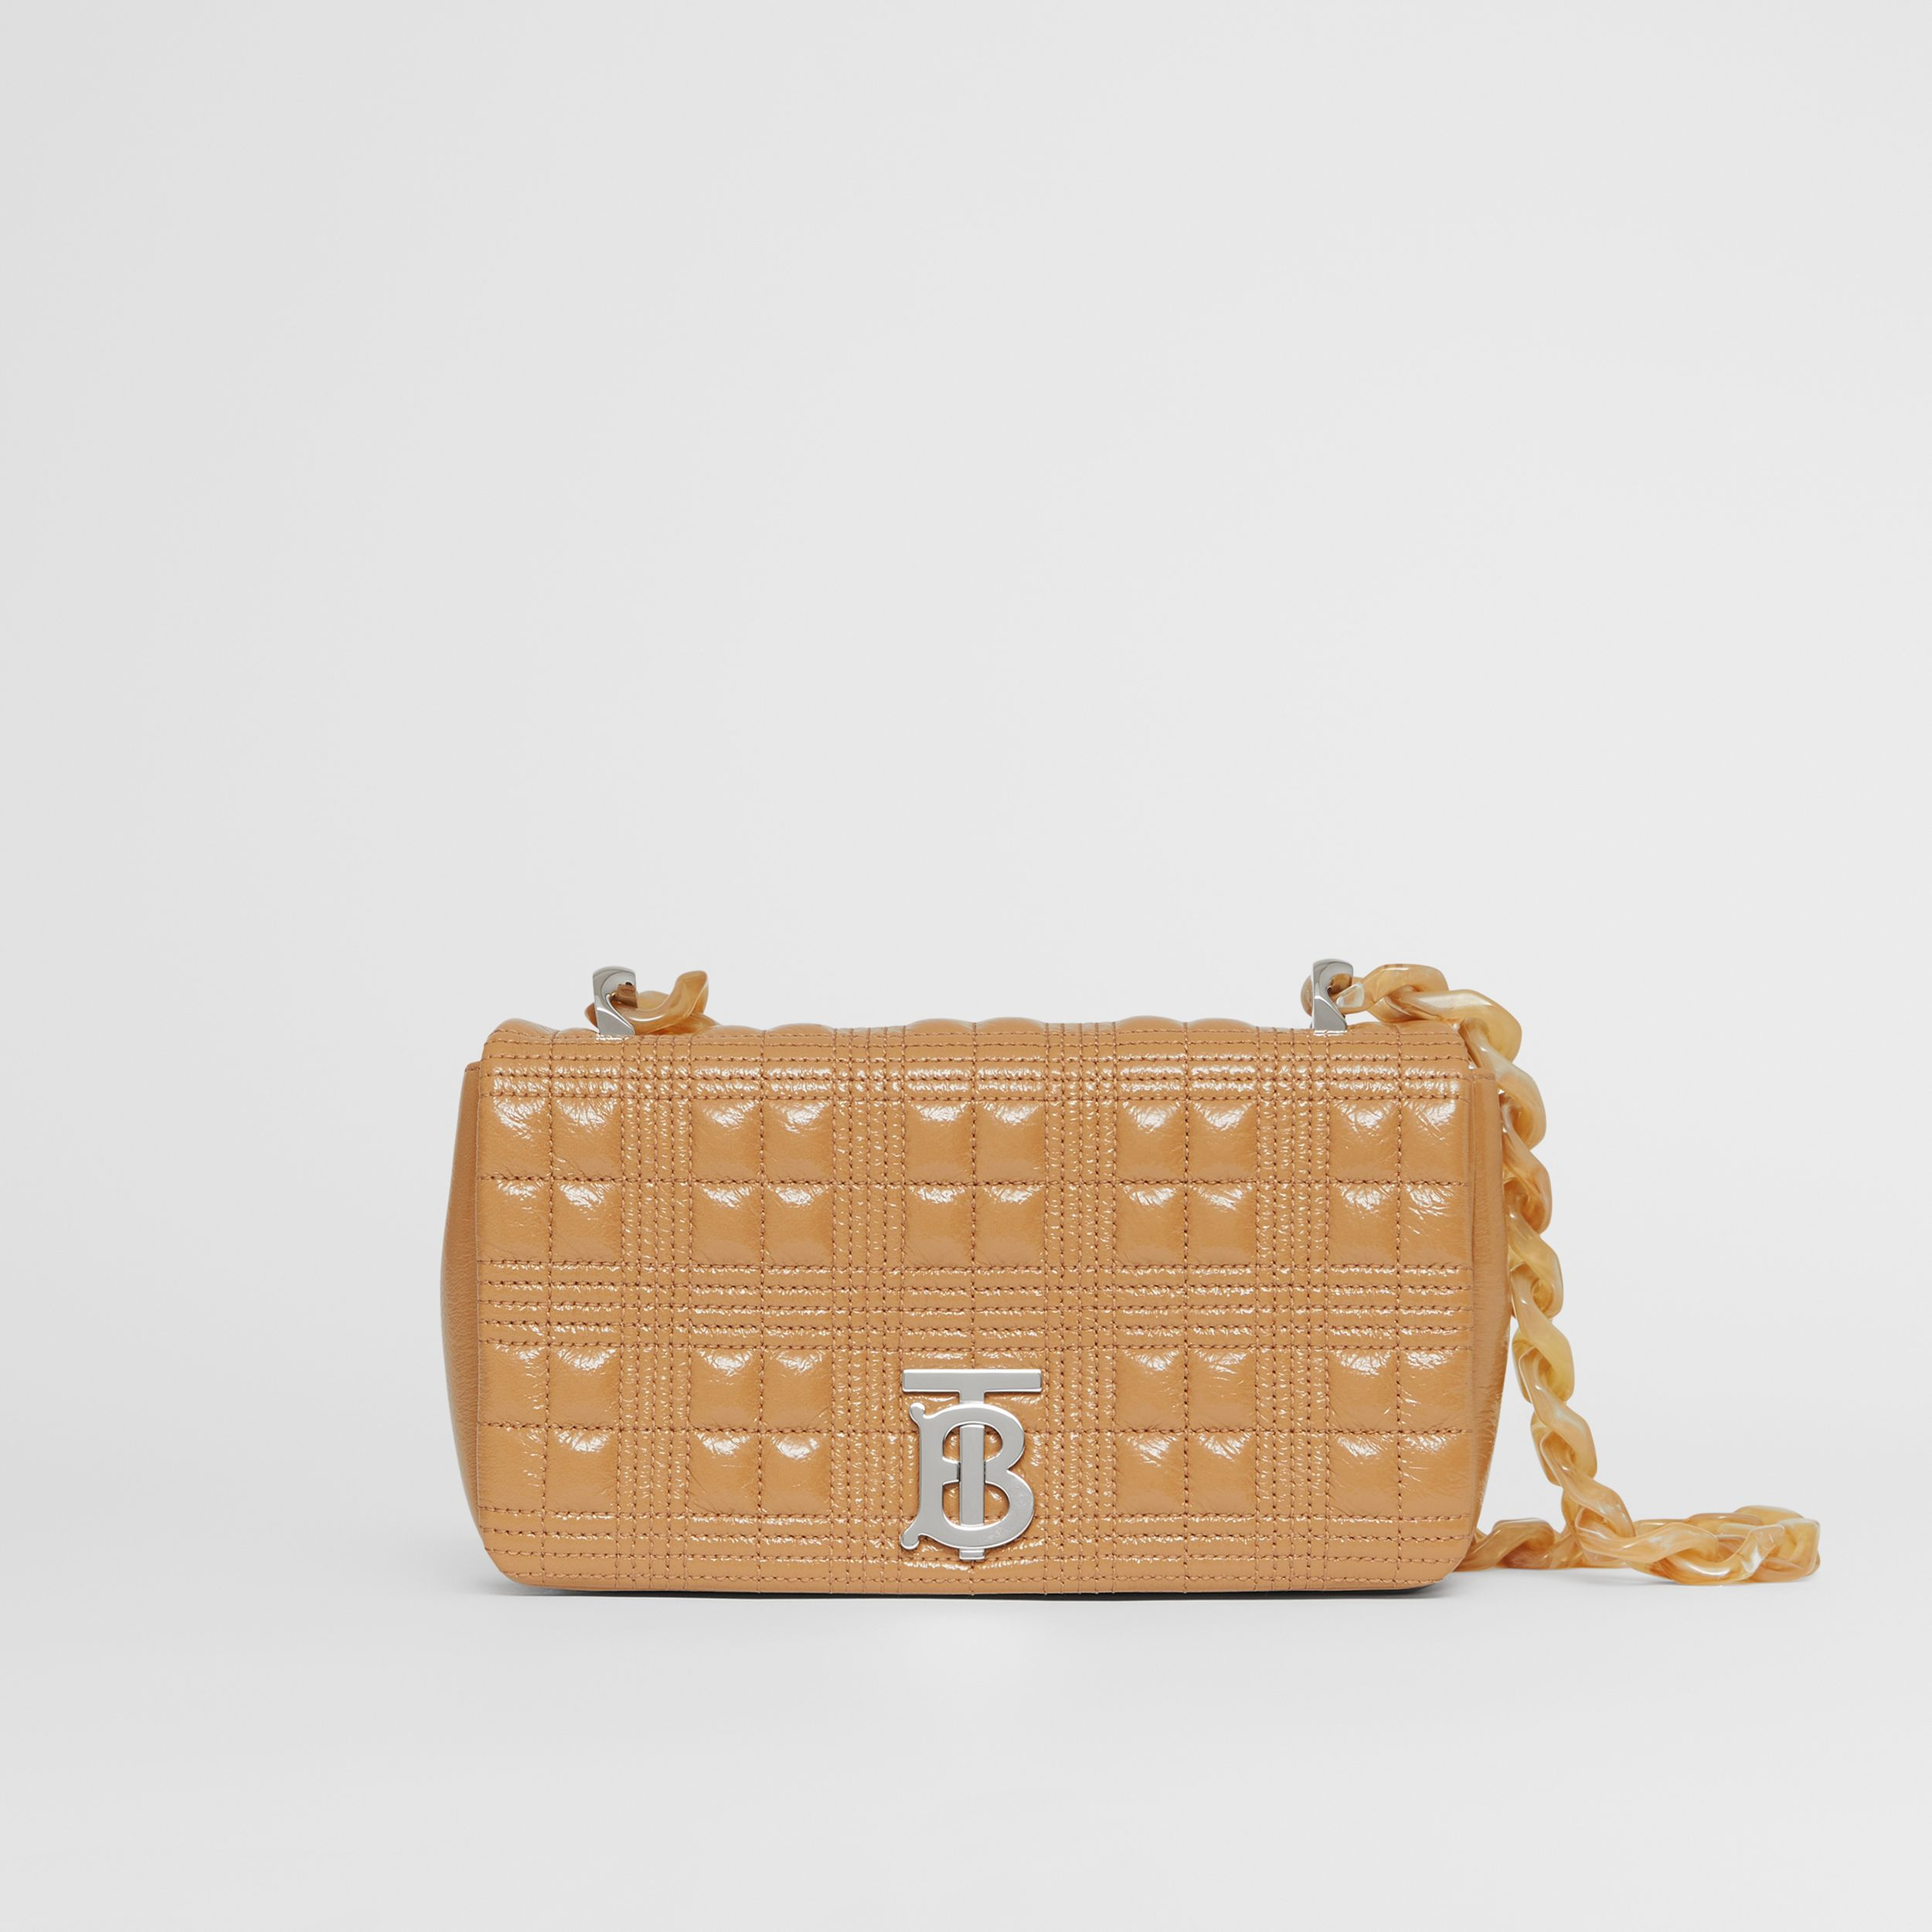 Small Quilted Lambskin Lola Bag in Camel - Women | Burberry Singapore - 4